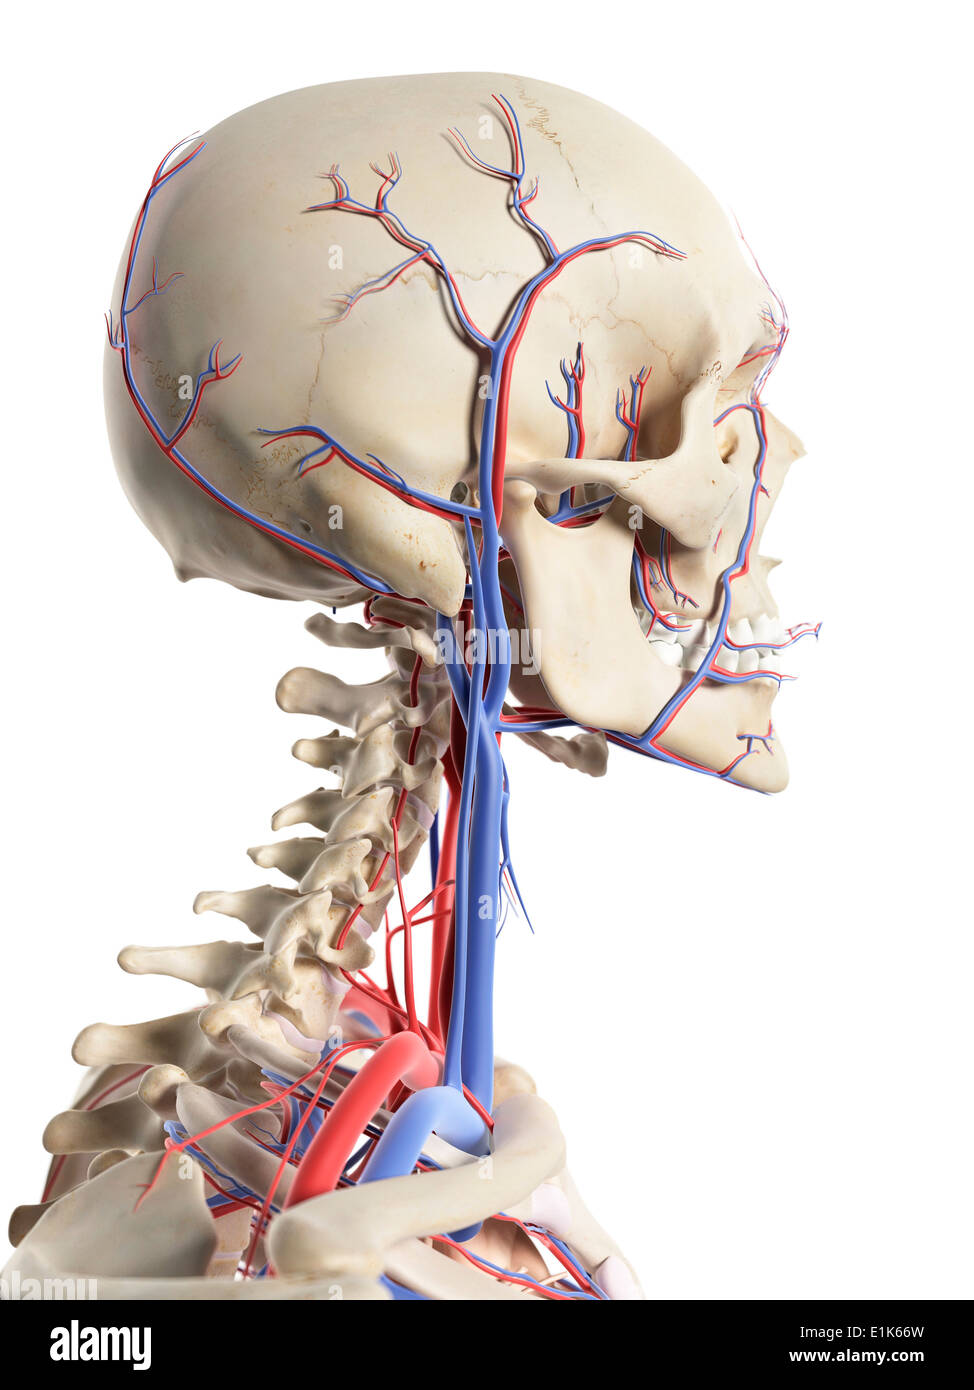 Head And Neck Arteries Stock Photos Head And Neck Arteries Stock